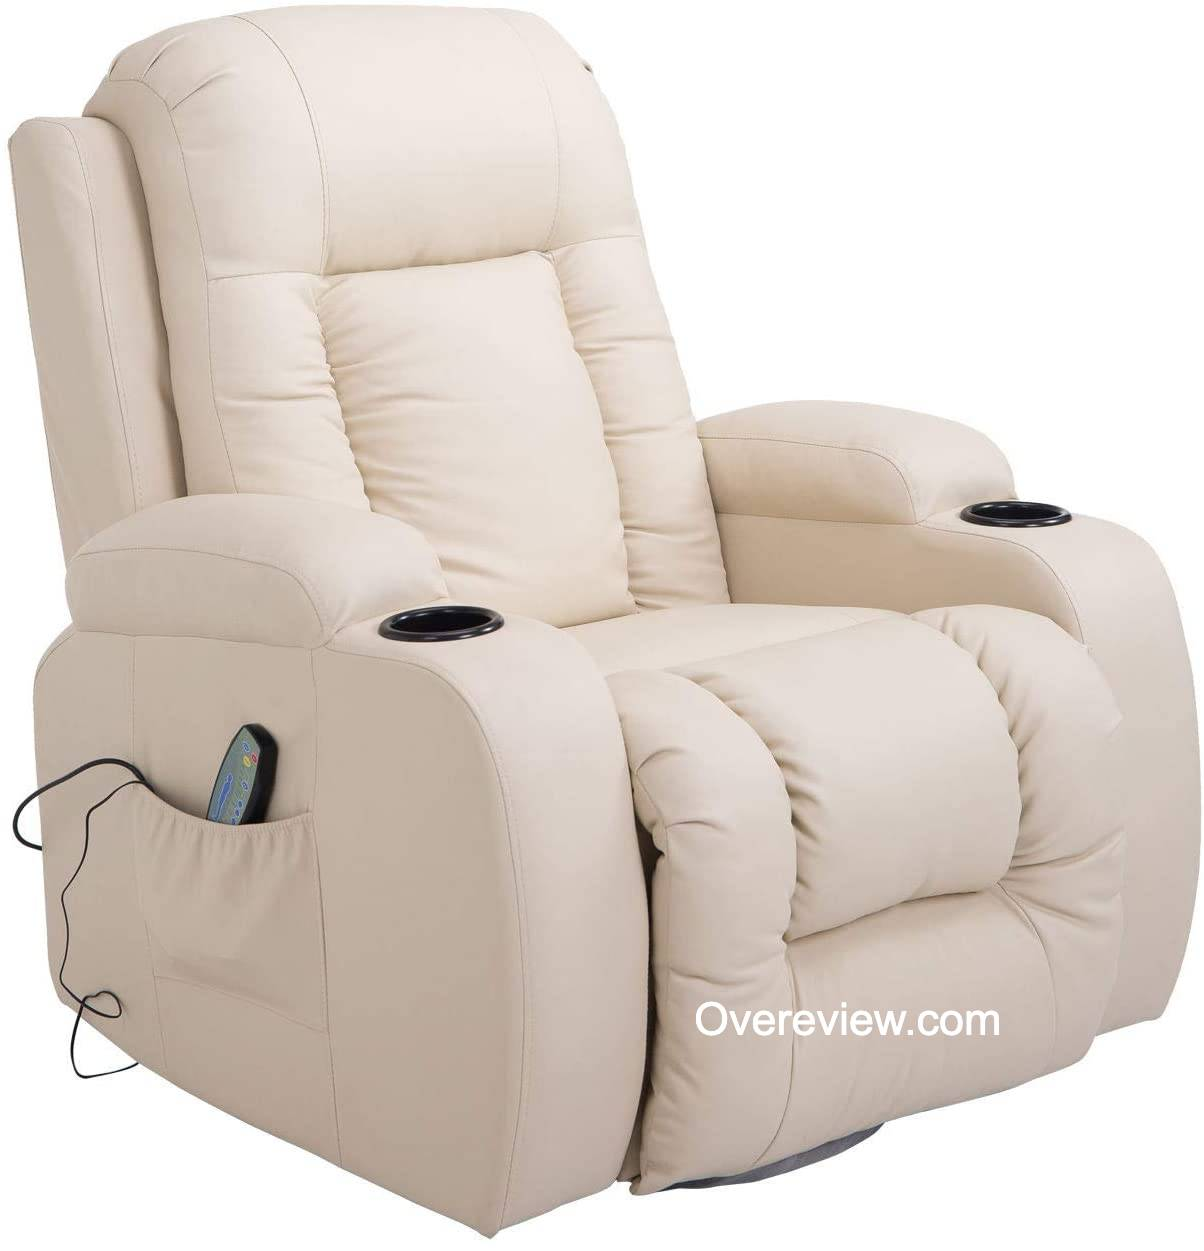 Best 15 Most Comfortable Recliners {Buying Guide} Reviews - [year] 8